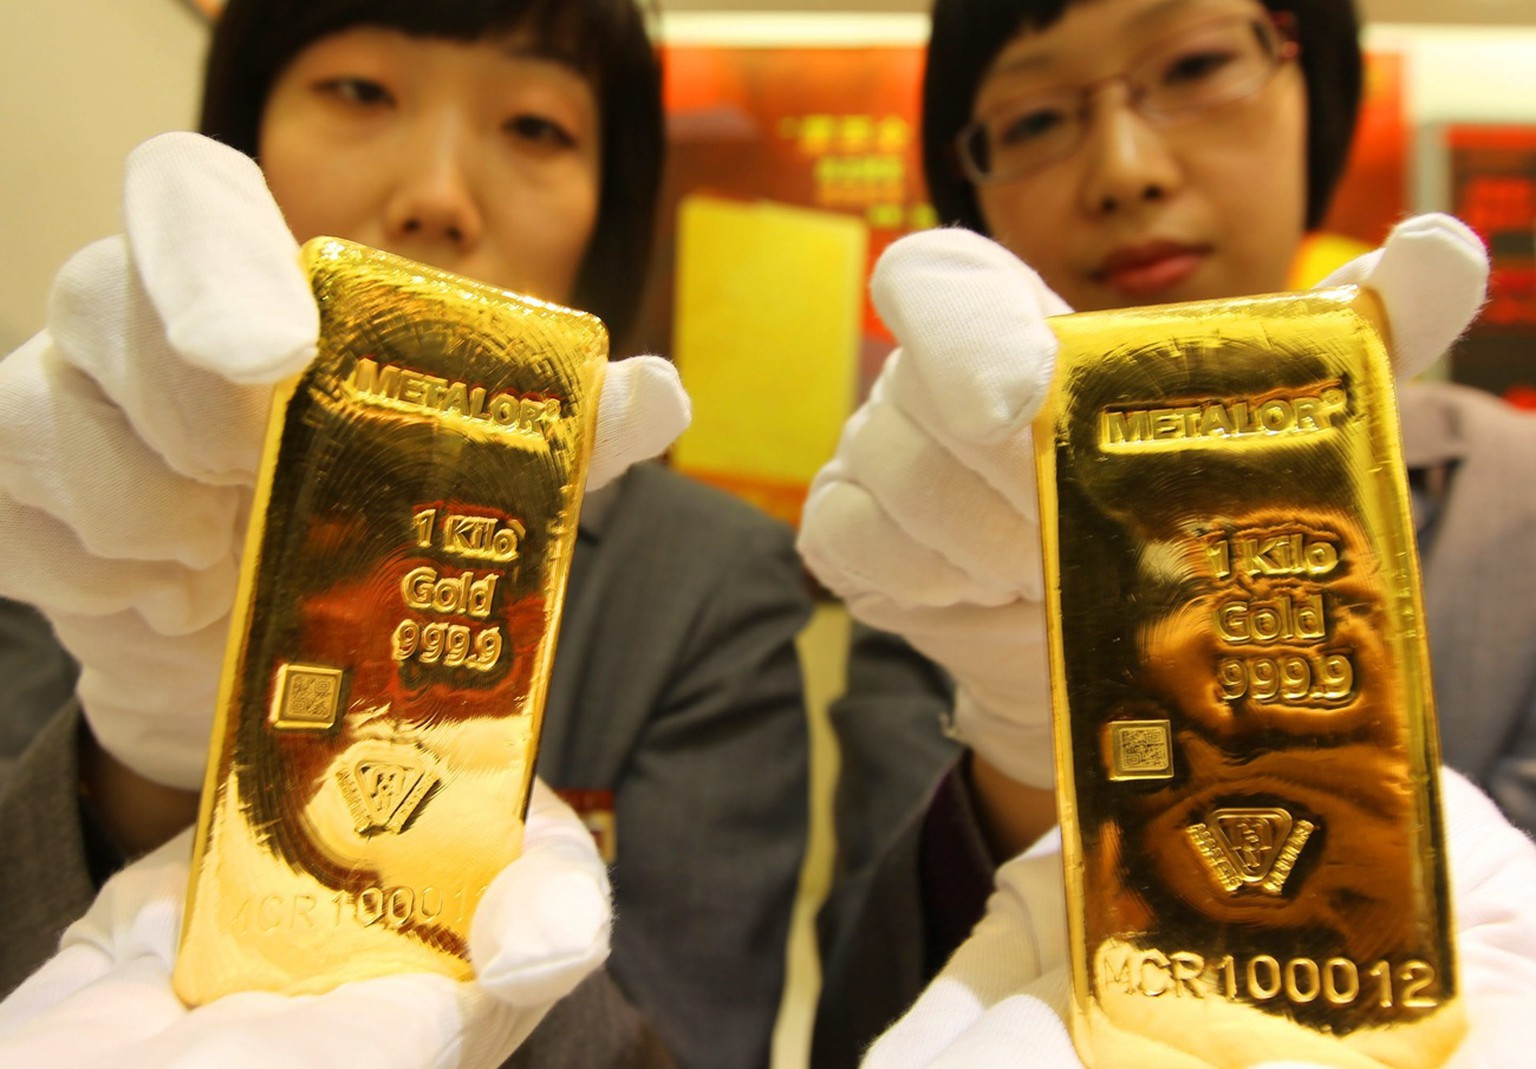 epa02091575 A photograph made available on 25 March 2010 showing two salesgirls show the one kilo Metalor gold bullions made by Swiss company Metalor on the first day of trading in Beijing 24 March 2010.  It is the first foreign brand gold bullion traded in Beijing.  EPA/LAO CAI